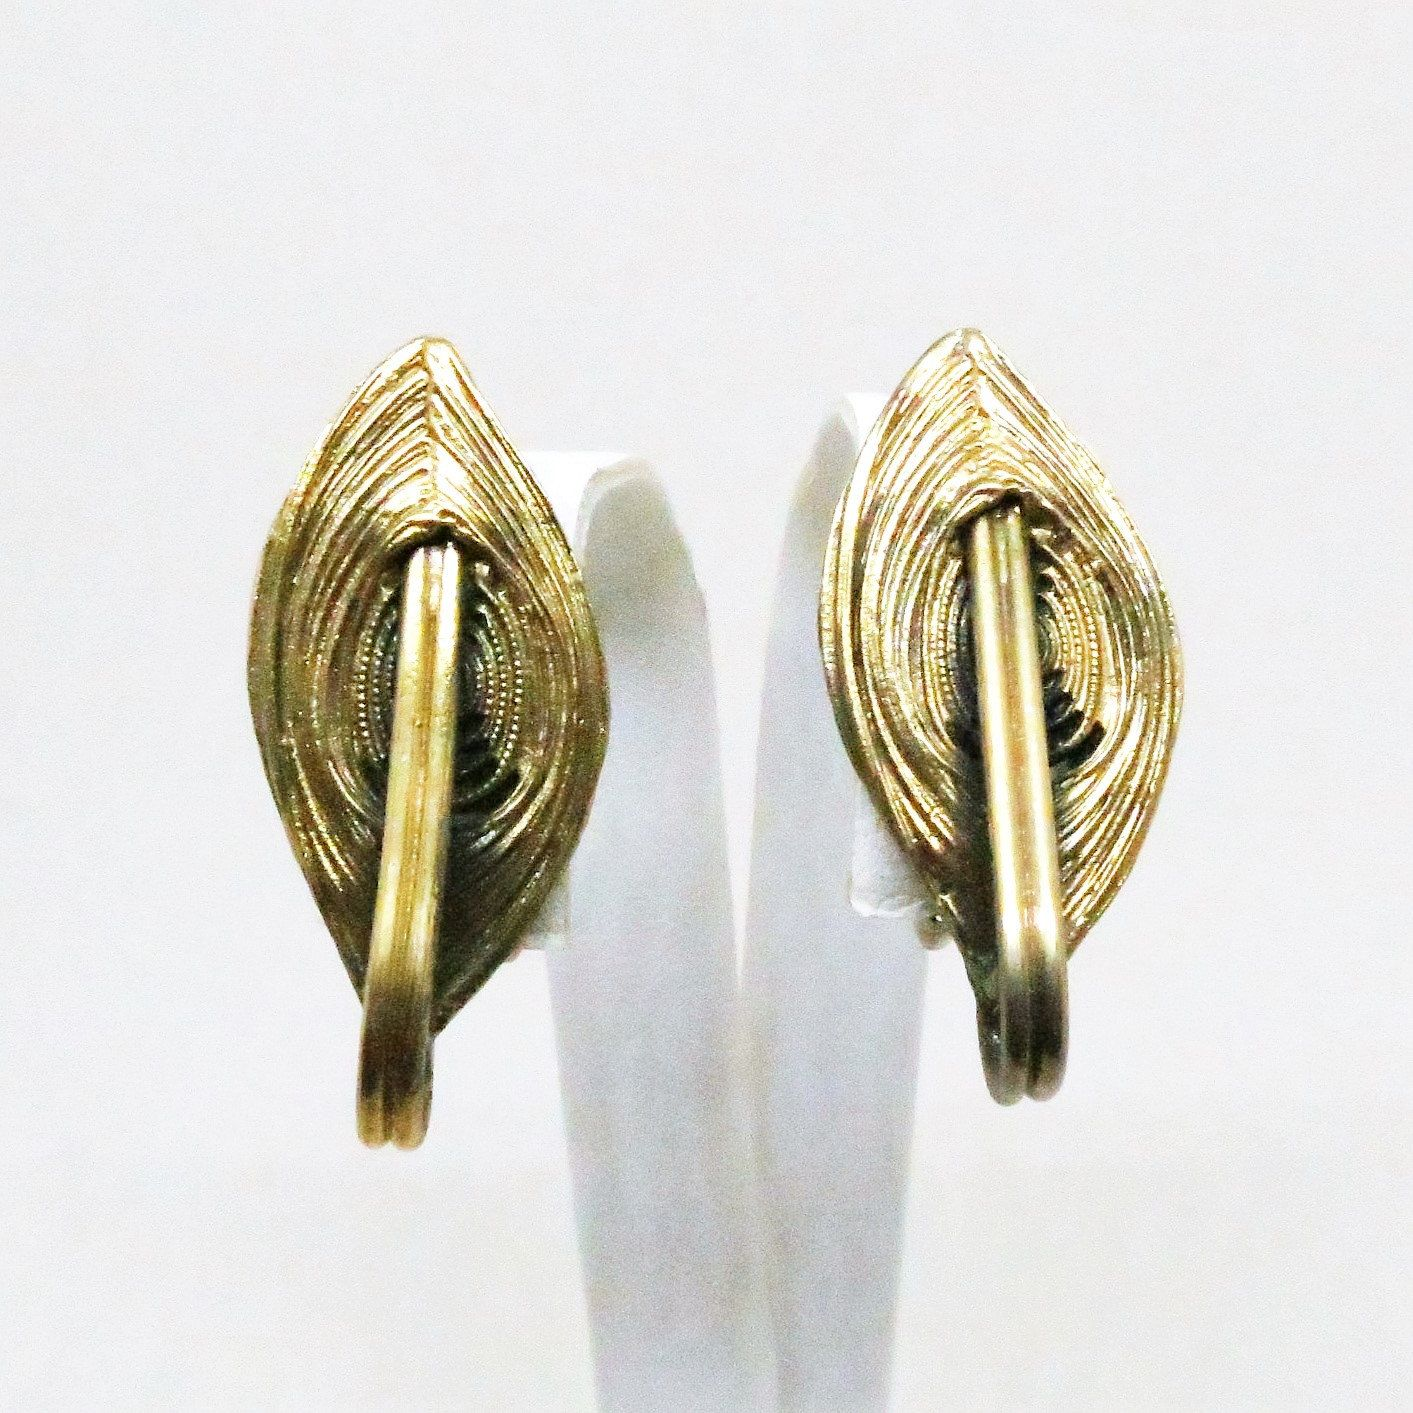 Pewter with Gold Wash Earrings - Vintage, Tortolani Signed, Clip-on Earrings by MyDellaWear on Etsy $20